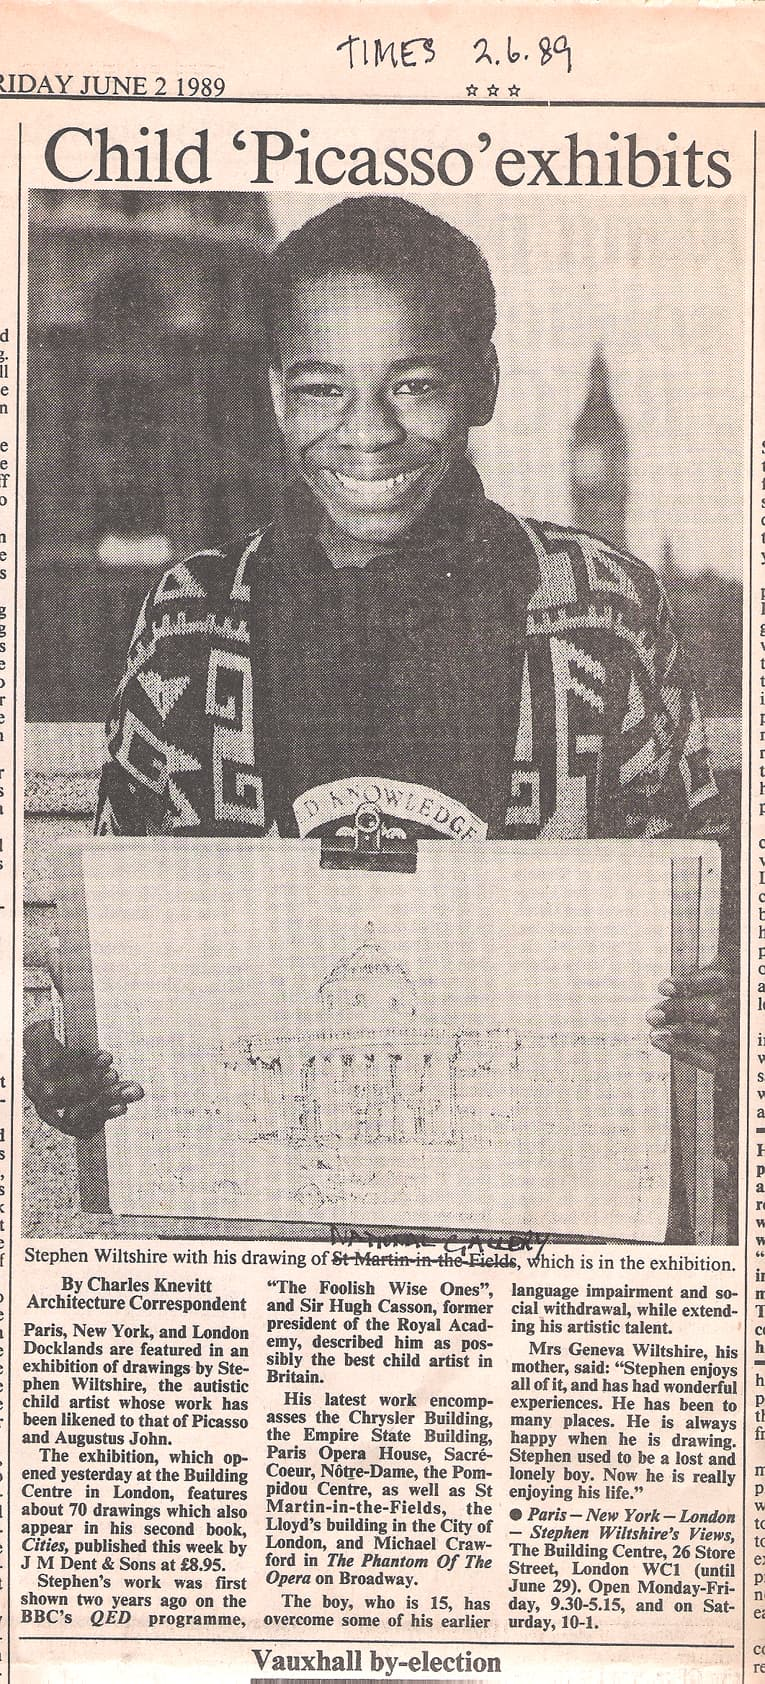 Child Picasso exhibits - The Stephen Wiltshire Archive - Press cuttings